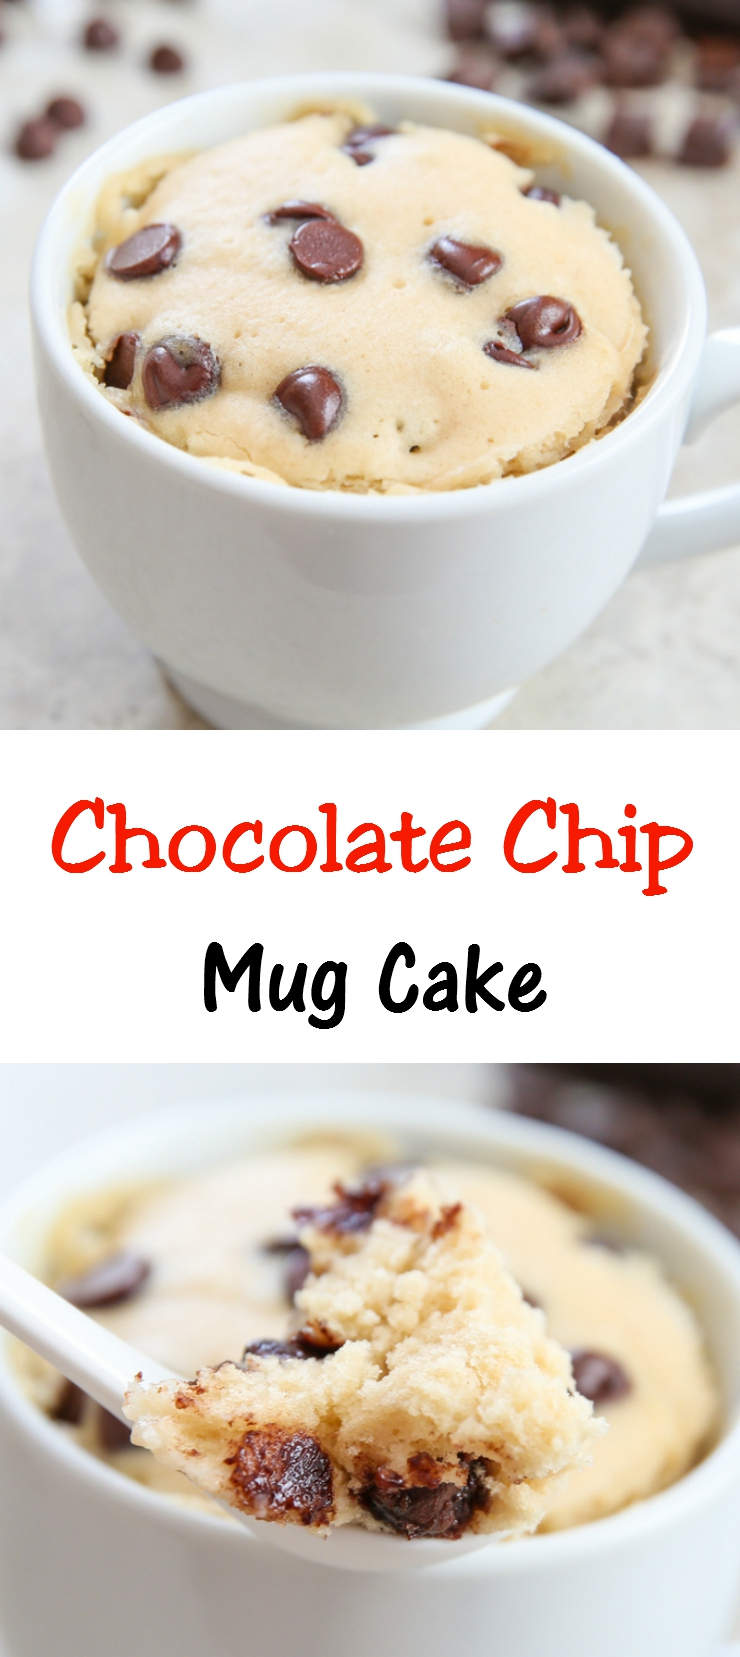 ... mug cake, check out my mug cake category which has a ton of mug cake